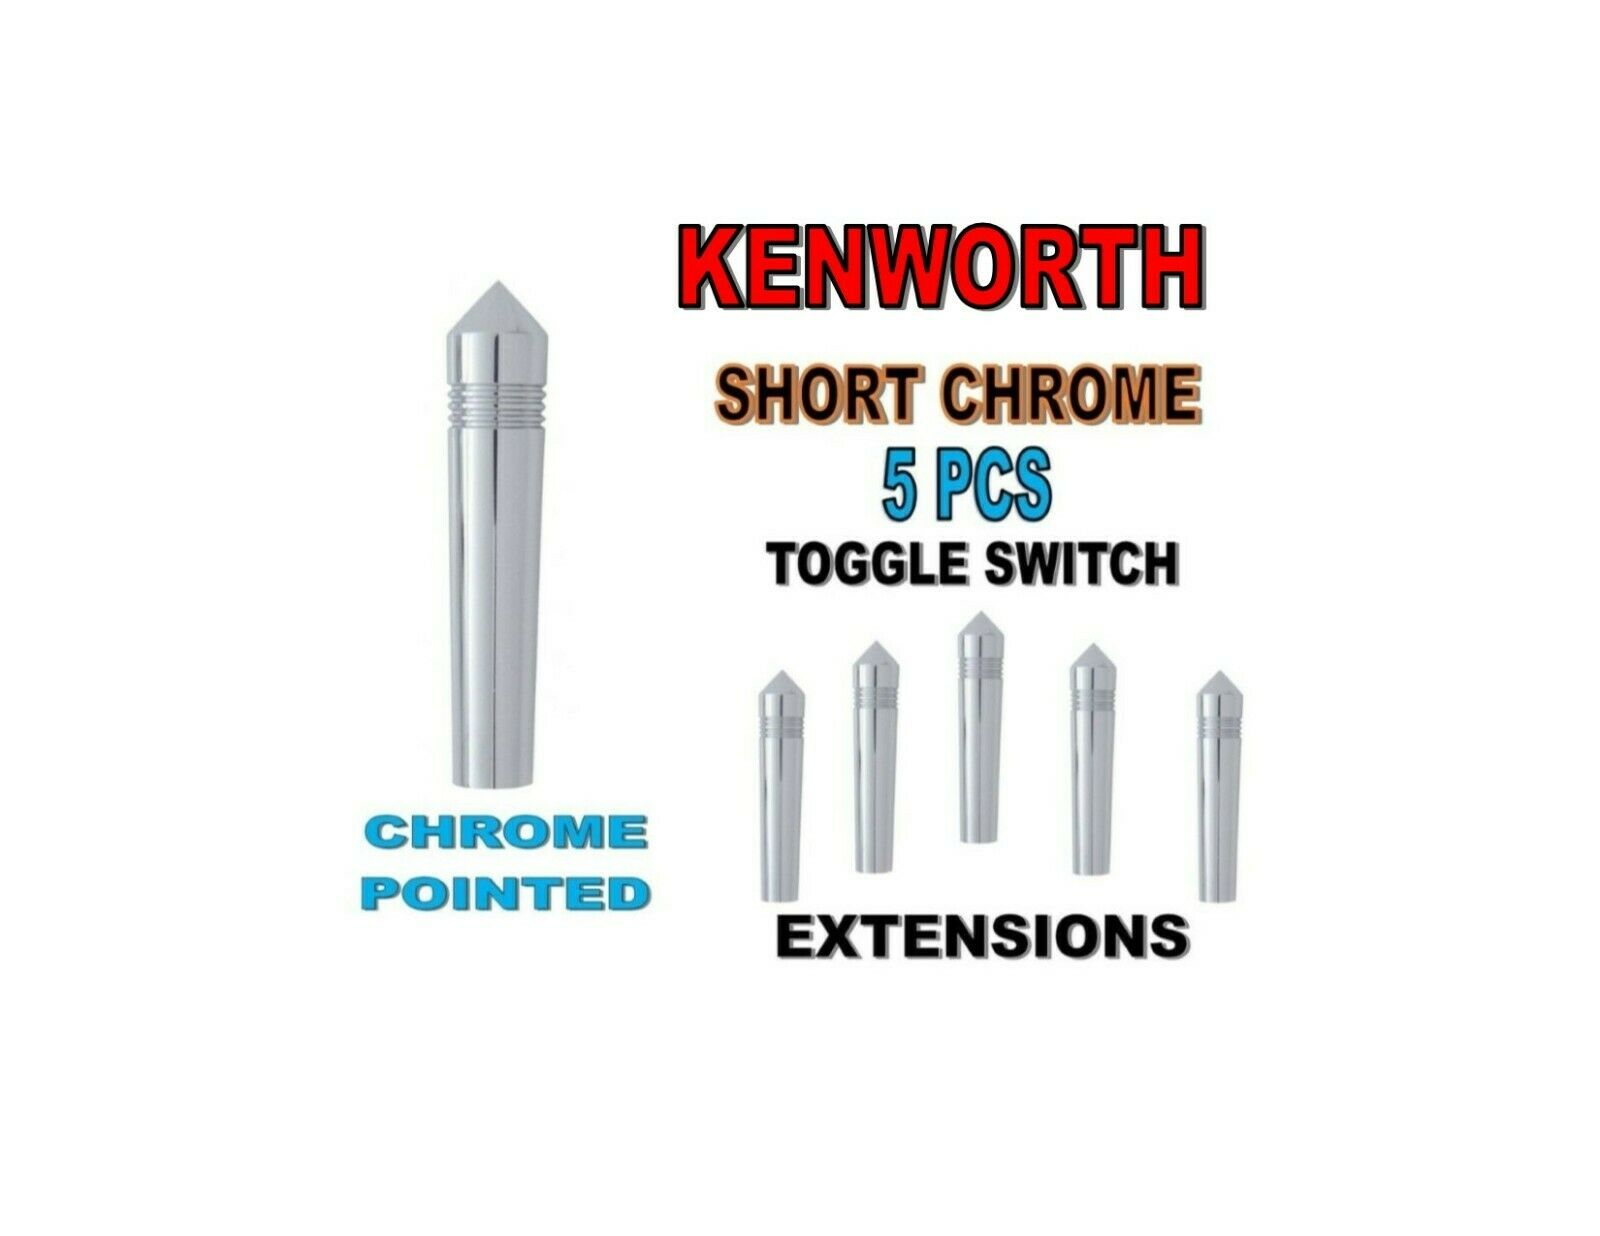 Toggle Switch Ext. Short Chrome - Chrome POINTED (X5) KENWORTH